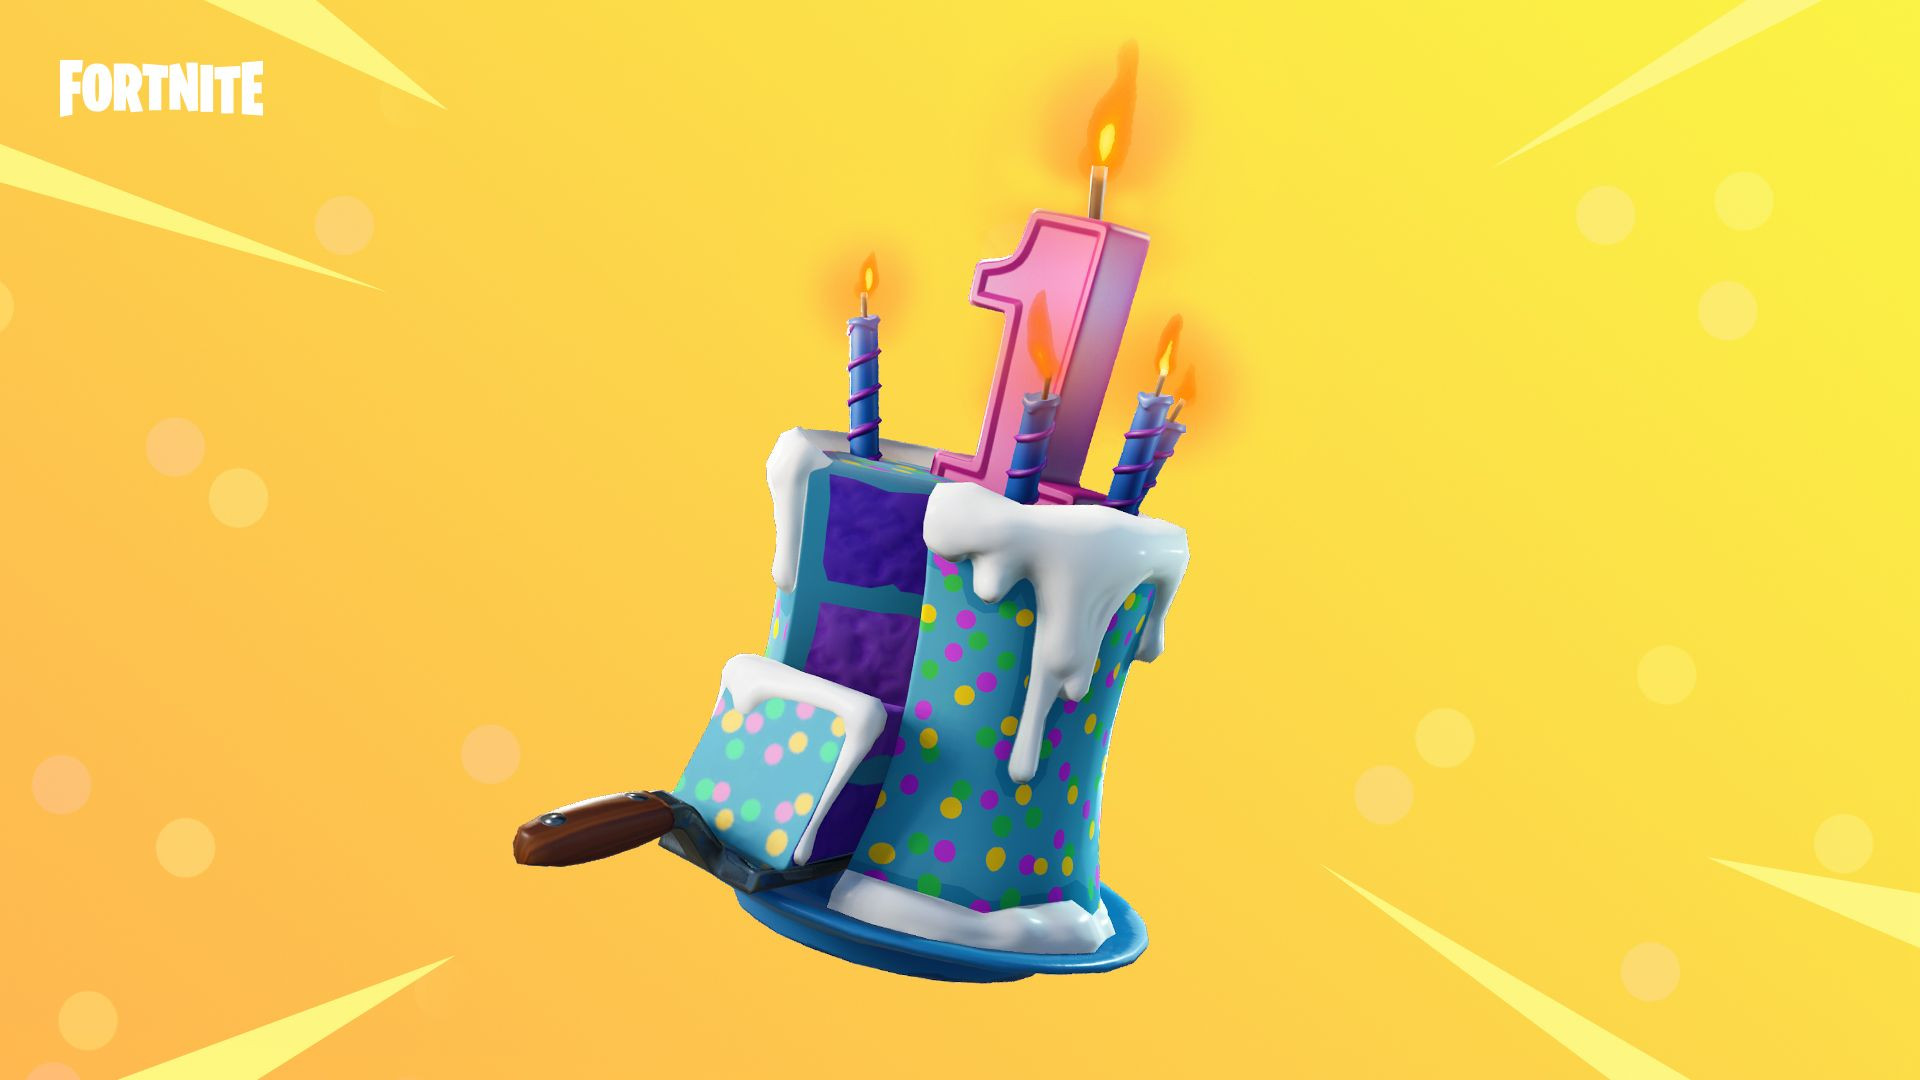 Best ideas about Fortnite Birthday Cake Map . Save or Pin Where to find the birthday cakes to plete Fortnite Now.